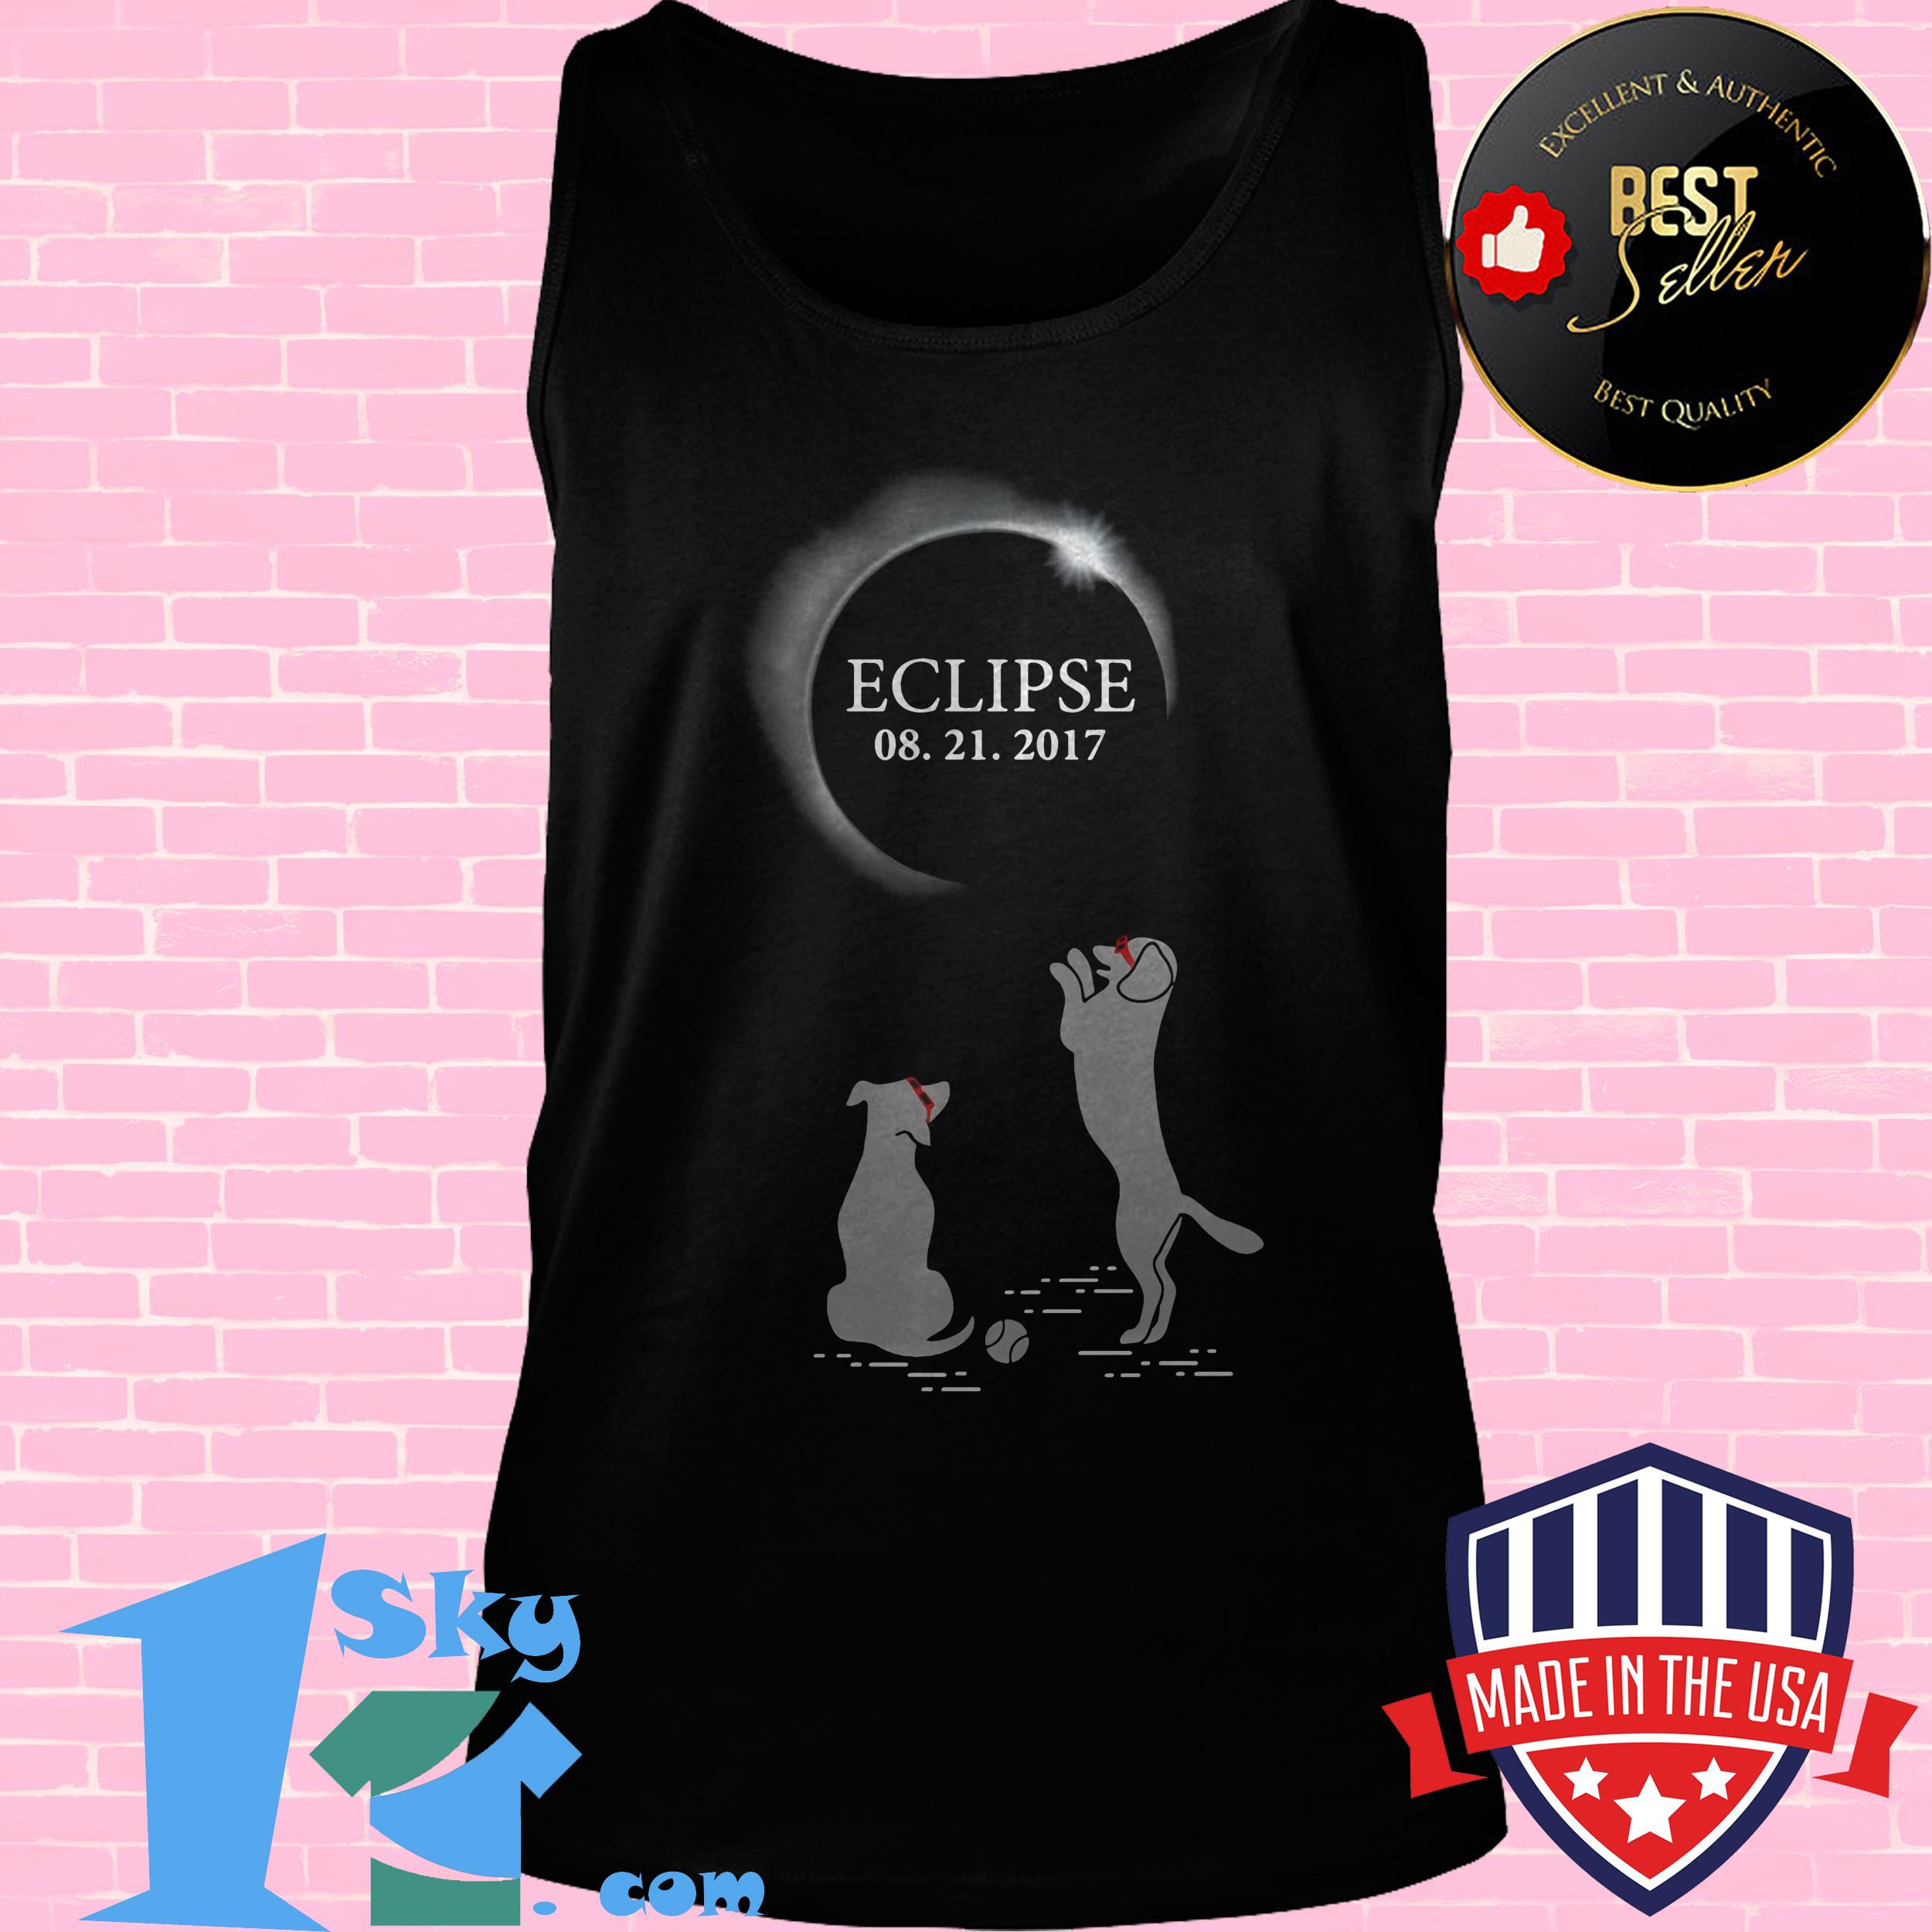 solar eclipse august 21 2017 dogs tank top - Solar Eclipse August 21 2017 Dogs shirt